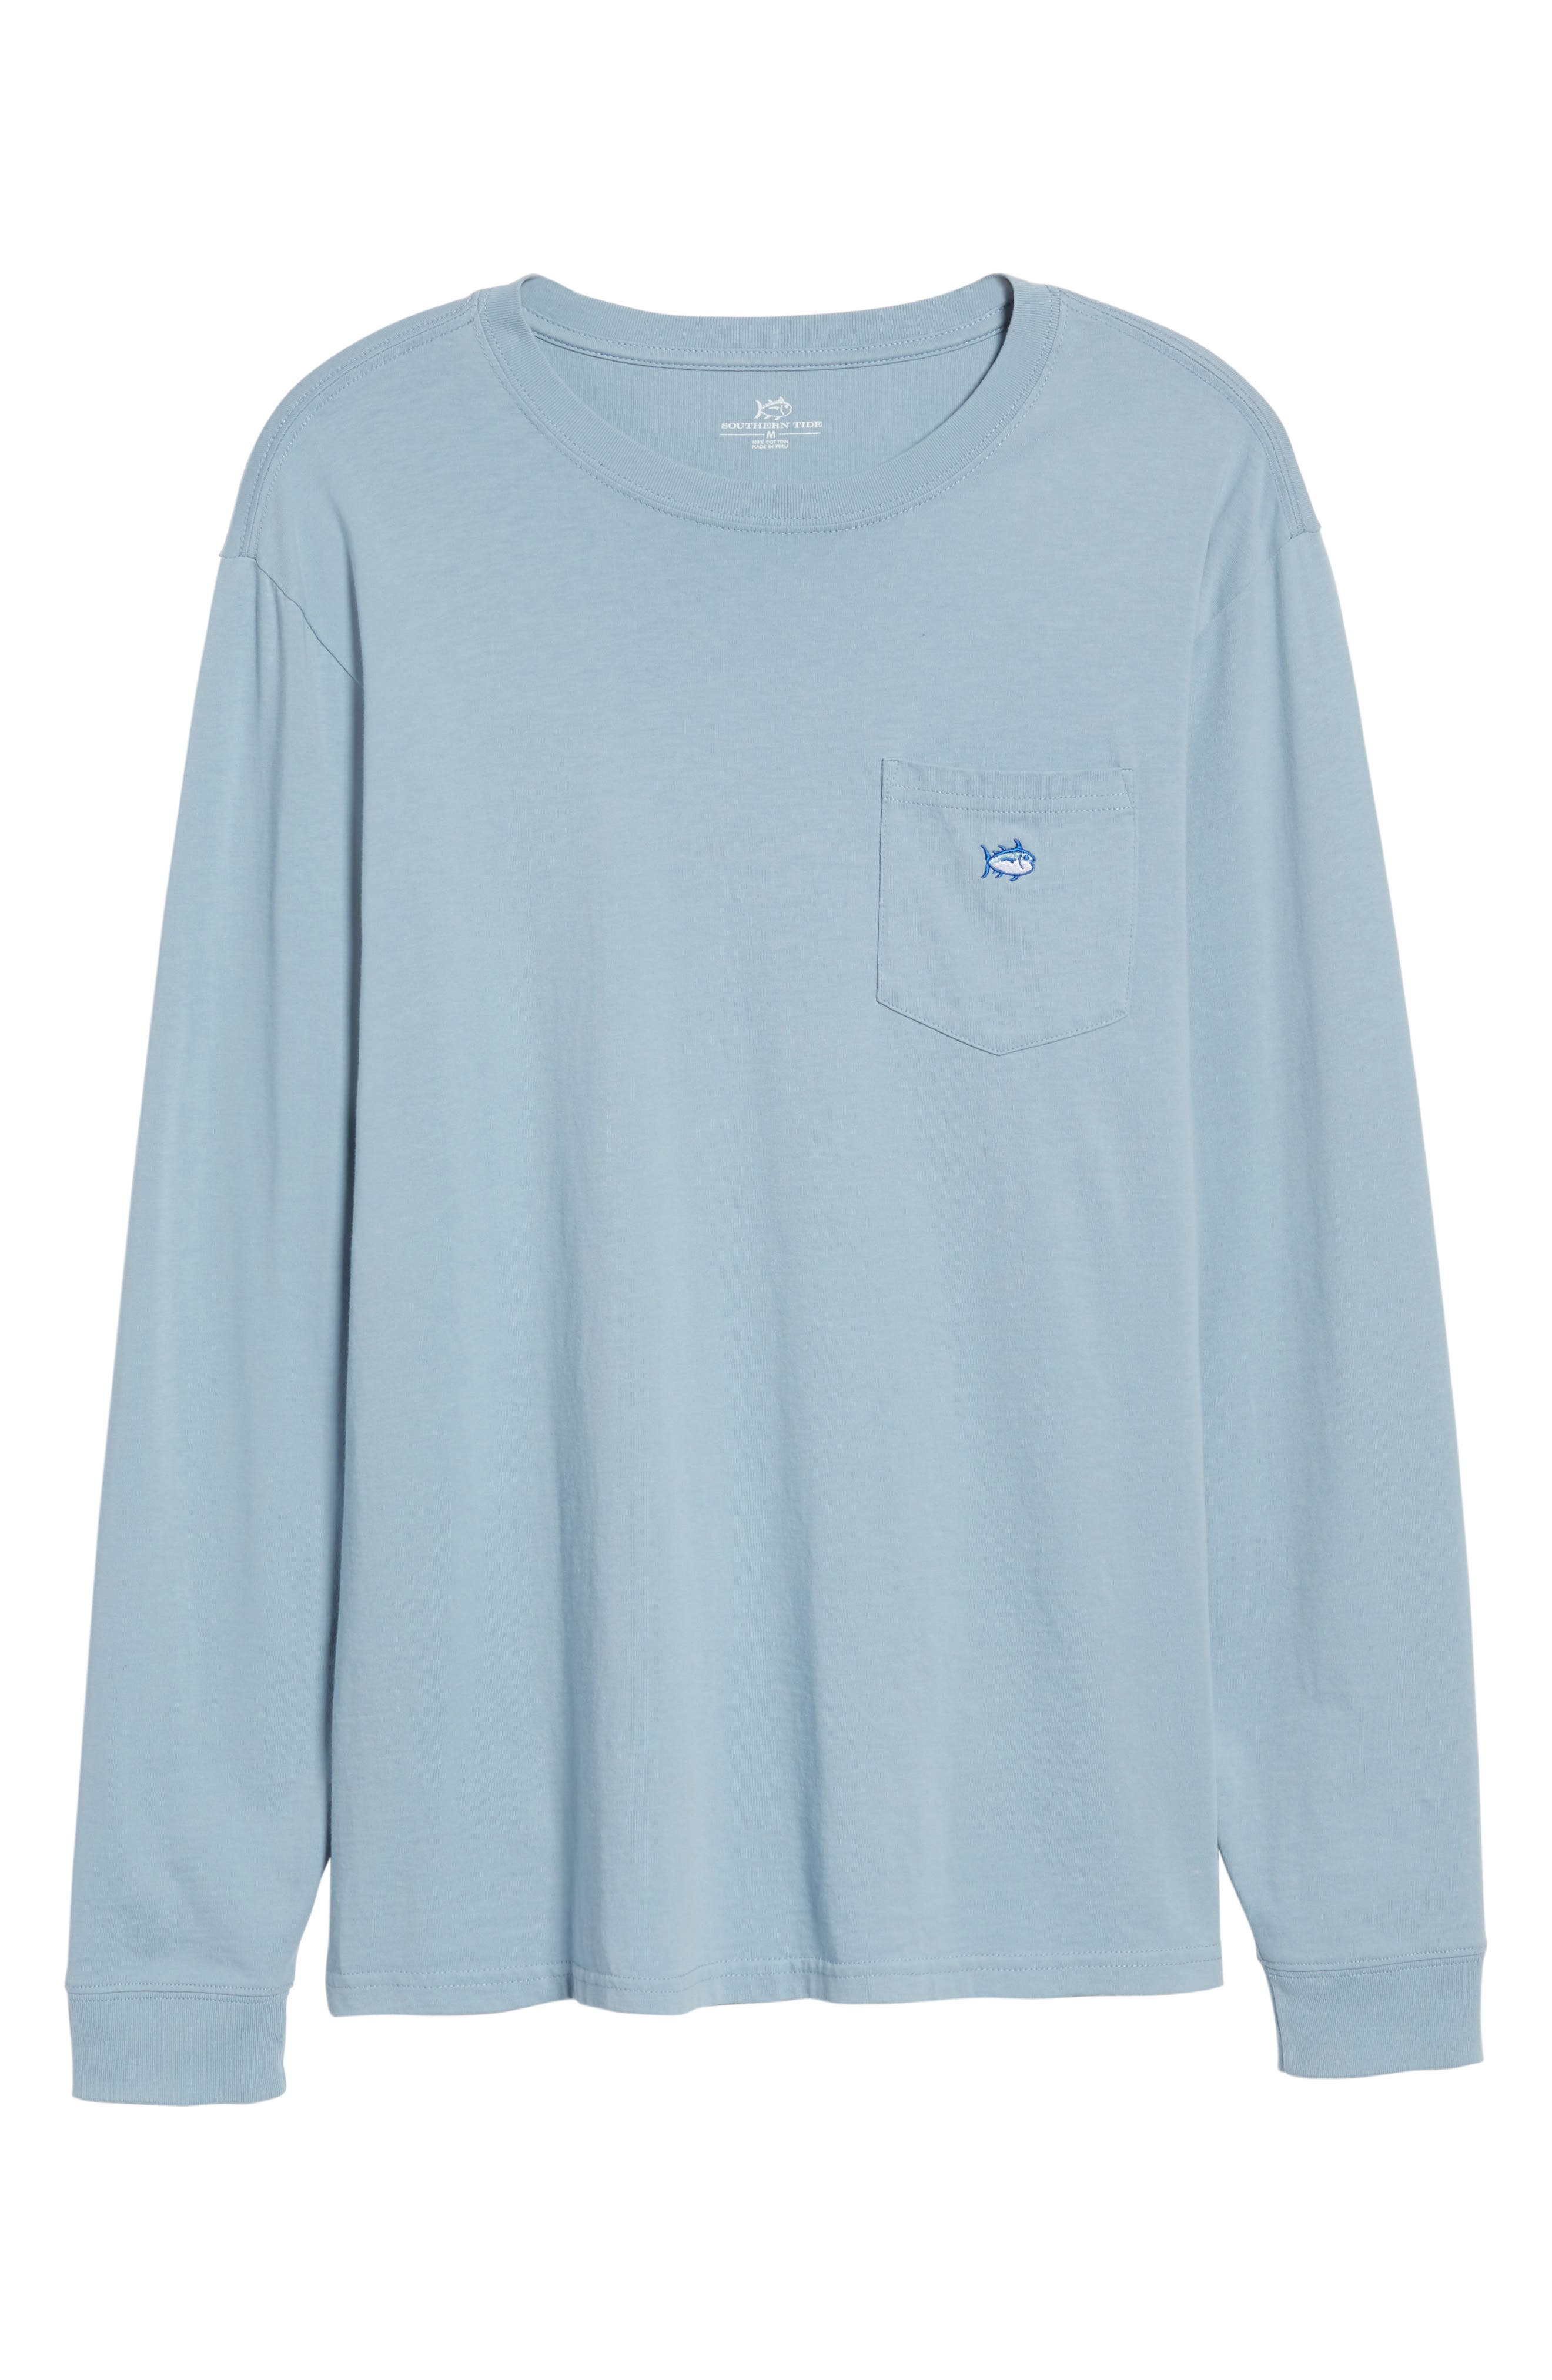 Embroidered Long Sleeve T-Shirt,                             Alternate thumbnail 6, color,                             448